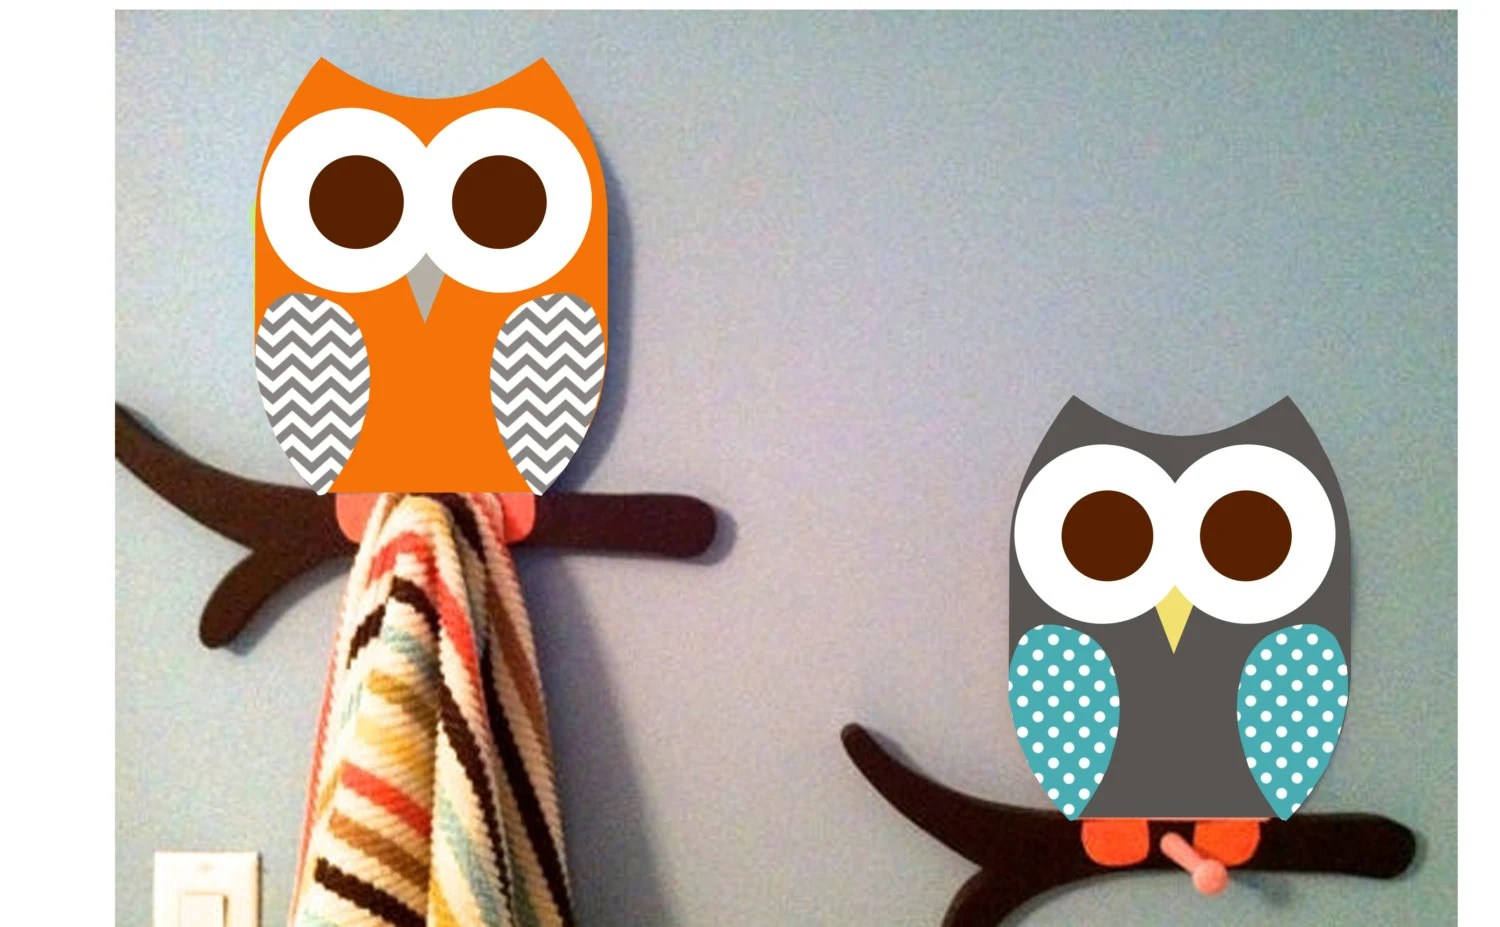 Owl Decor For Bathroom Owl Towel Racks Owl Bathroom Room Decor Wall By Thewoodenowl